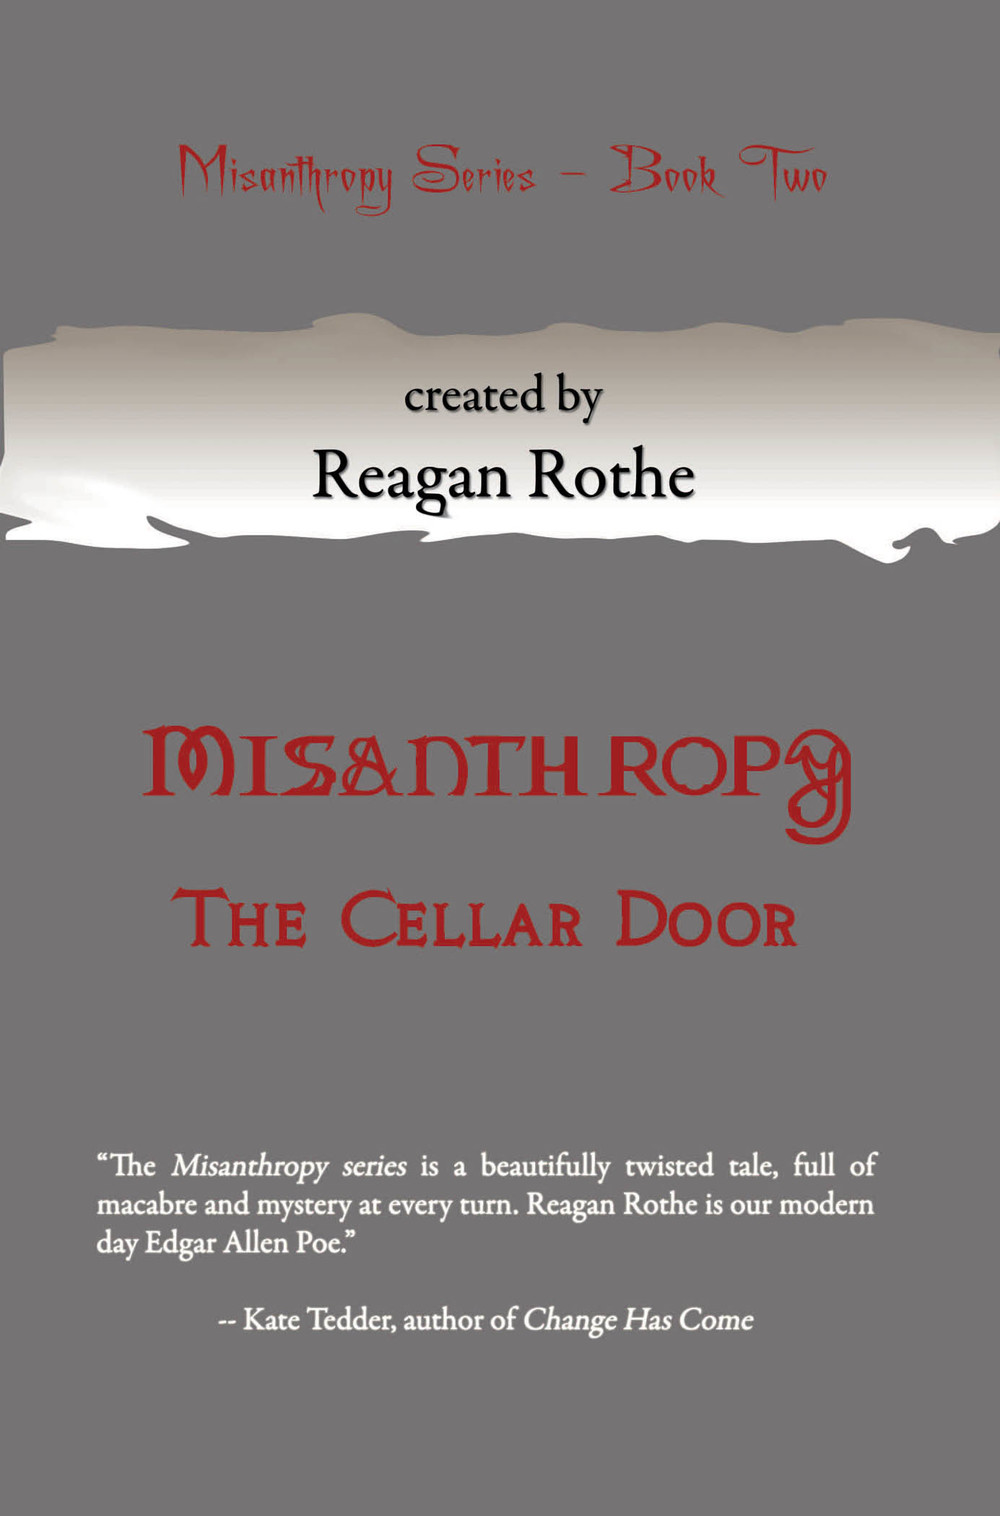 The Cellar Door eimage.jpg